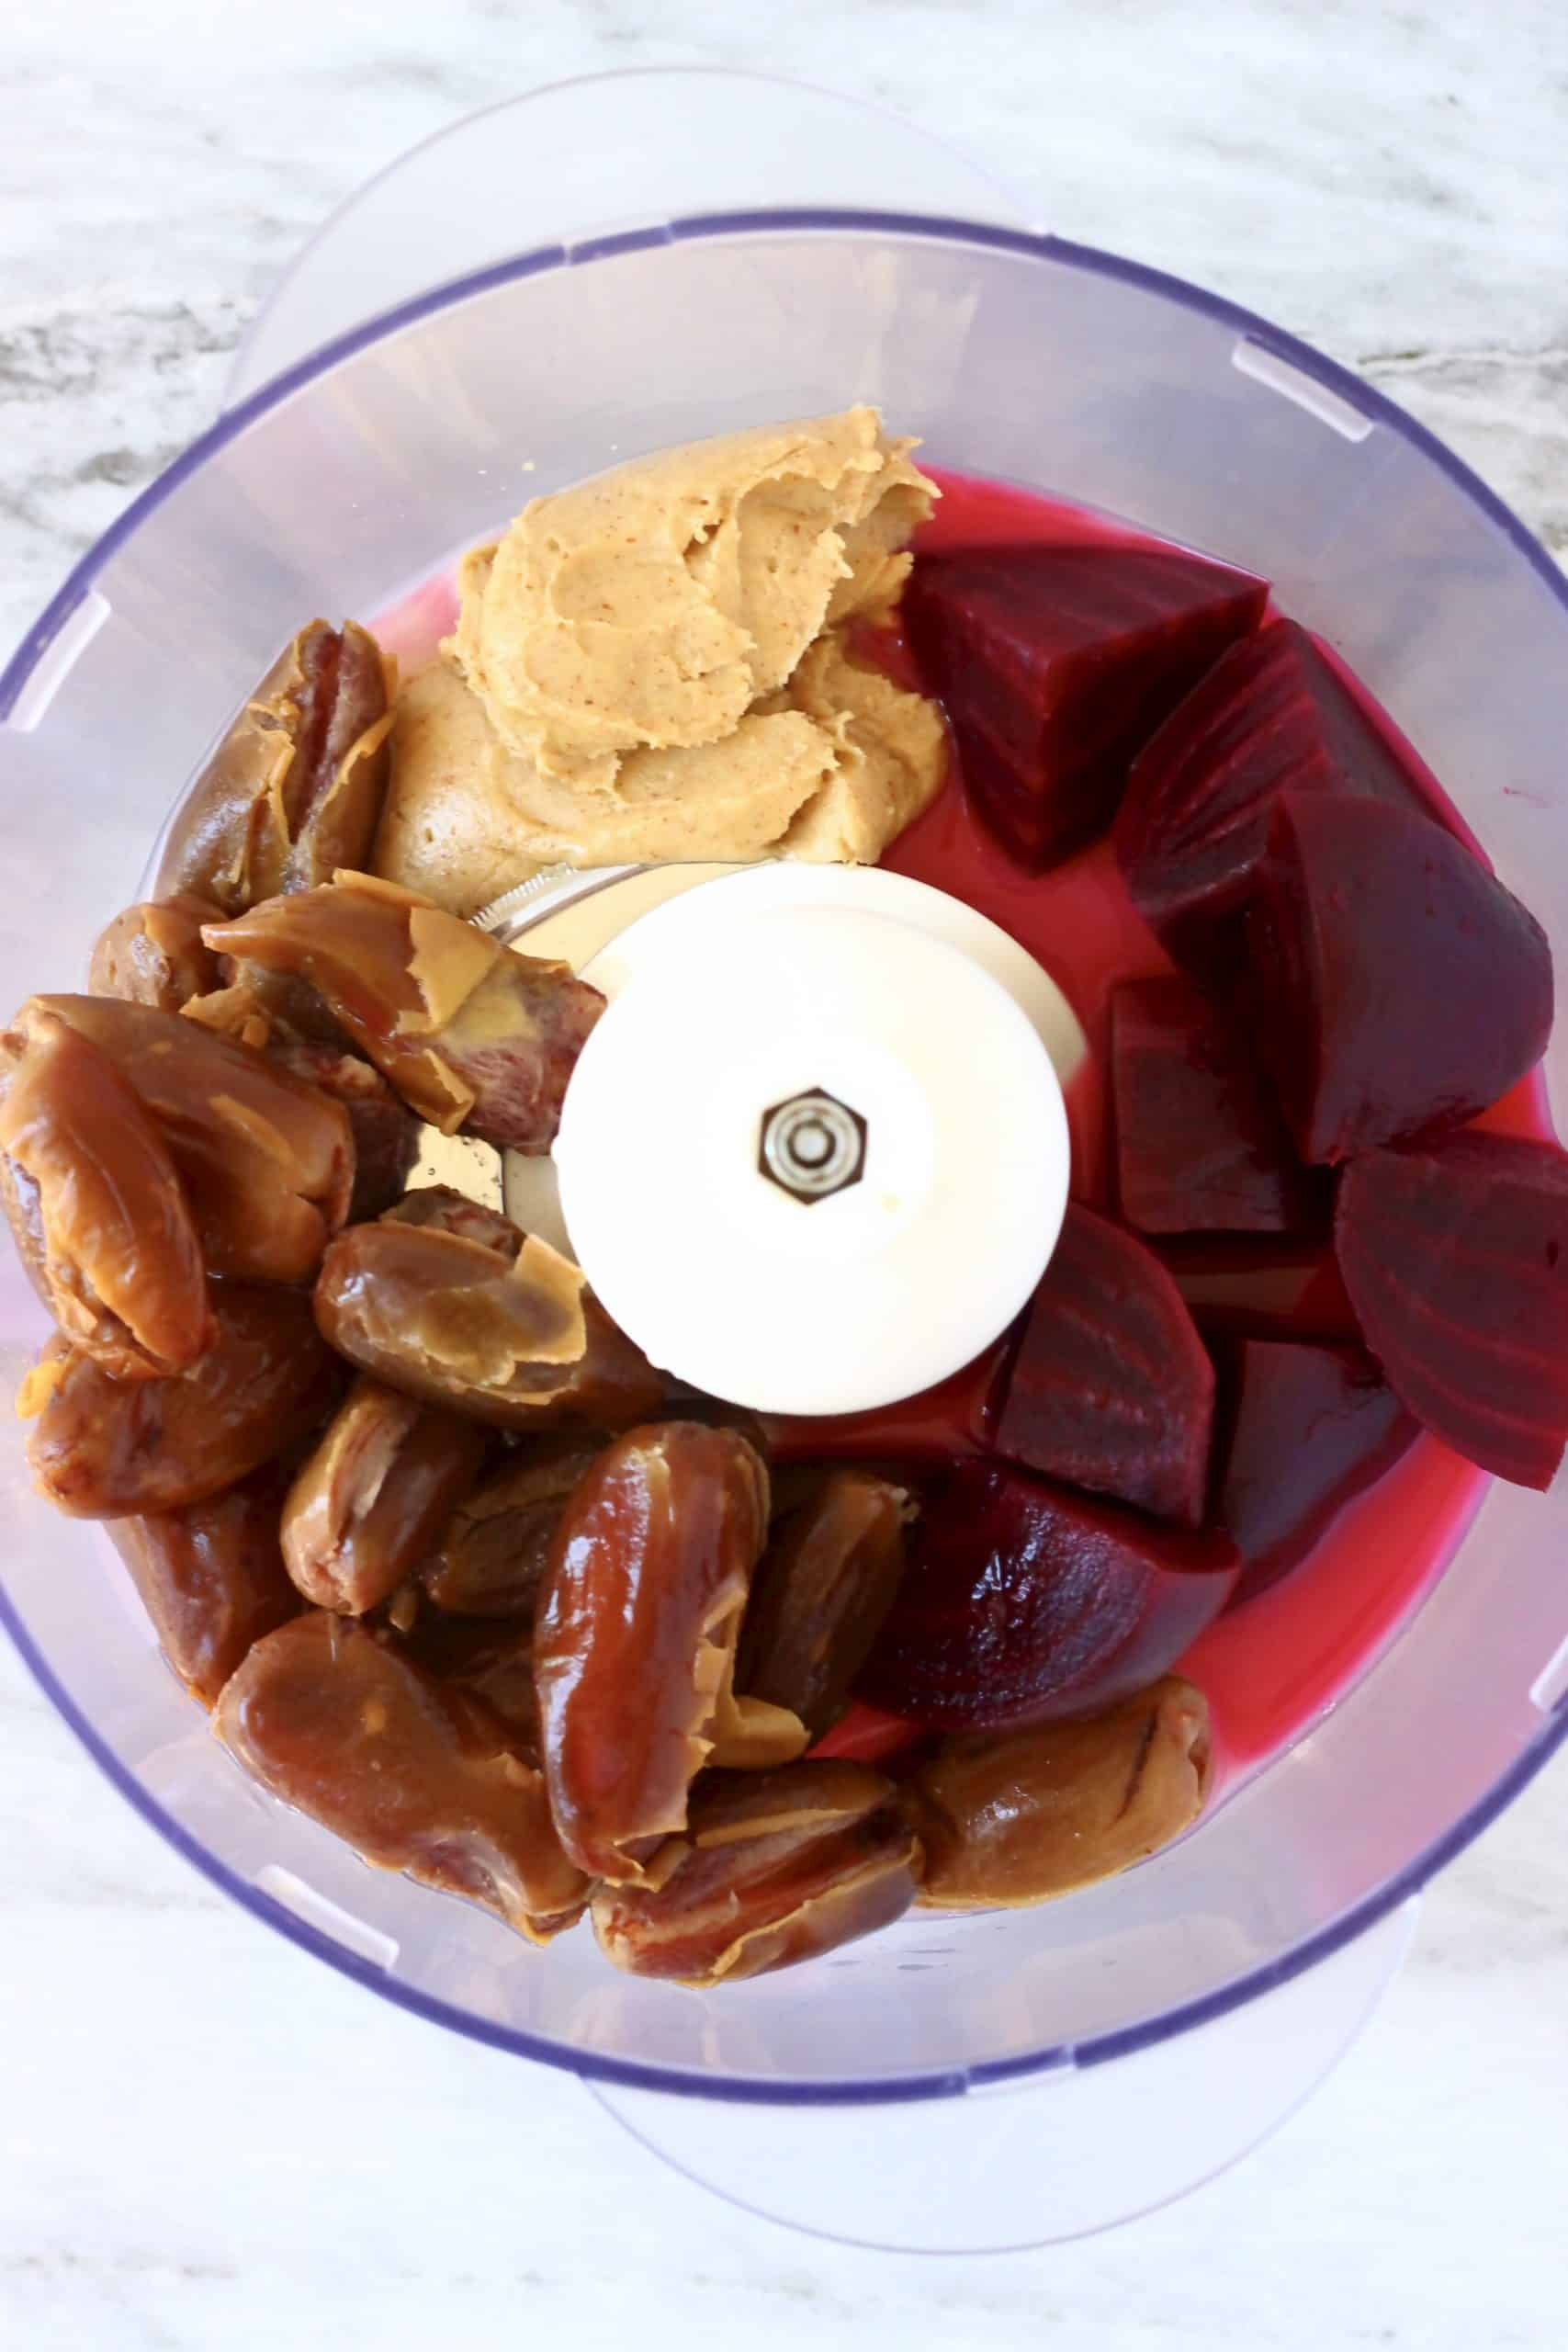 Dates, cooked diced beetroot, almond butter and almond milk in a food processor